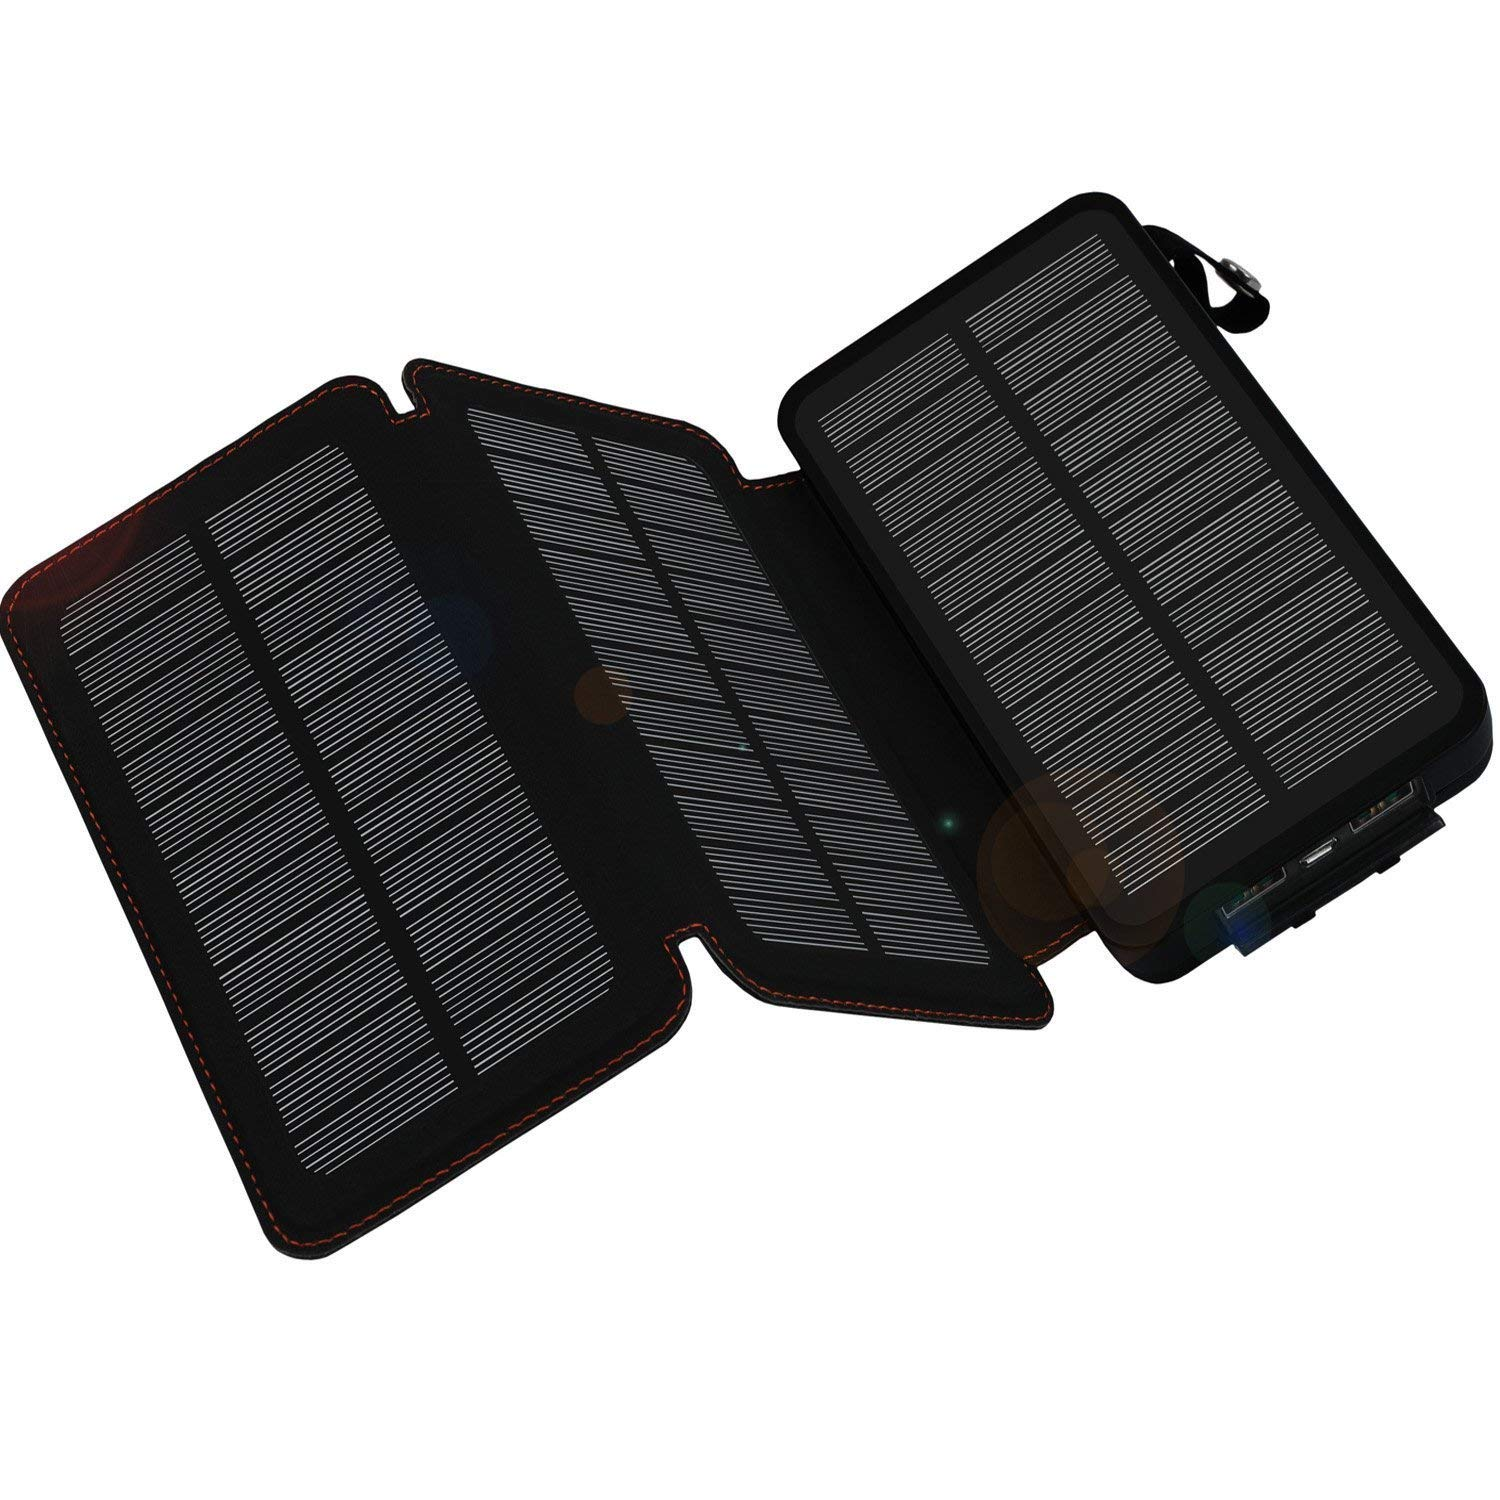 Solar-Charger-24000mAh-WBPINE-Solar-Power-Bank-Waterproof-Dual-USB-Output-with-3-Solar-Panels-and-Flashlights